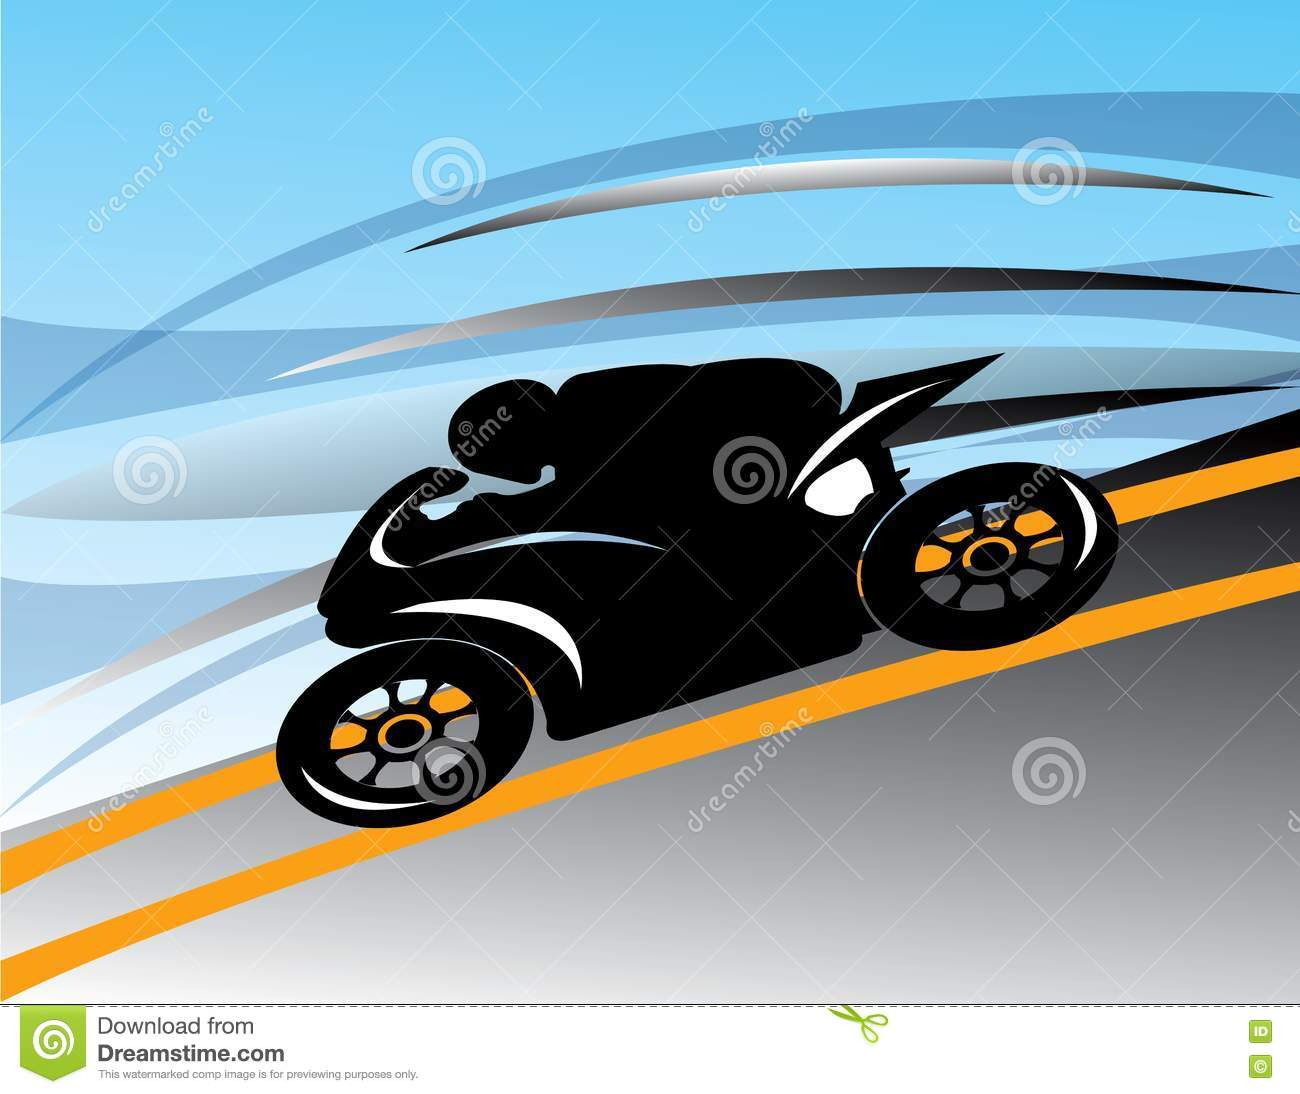 Abstract motorcycle track illustration spee royalty free stock photo